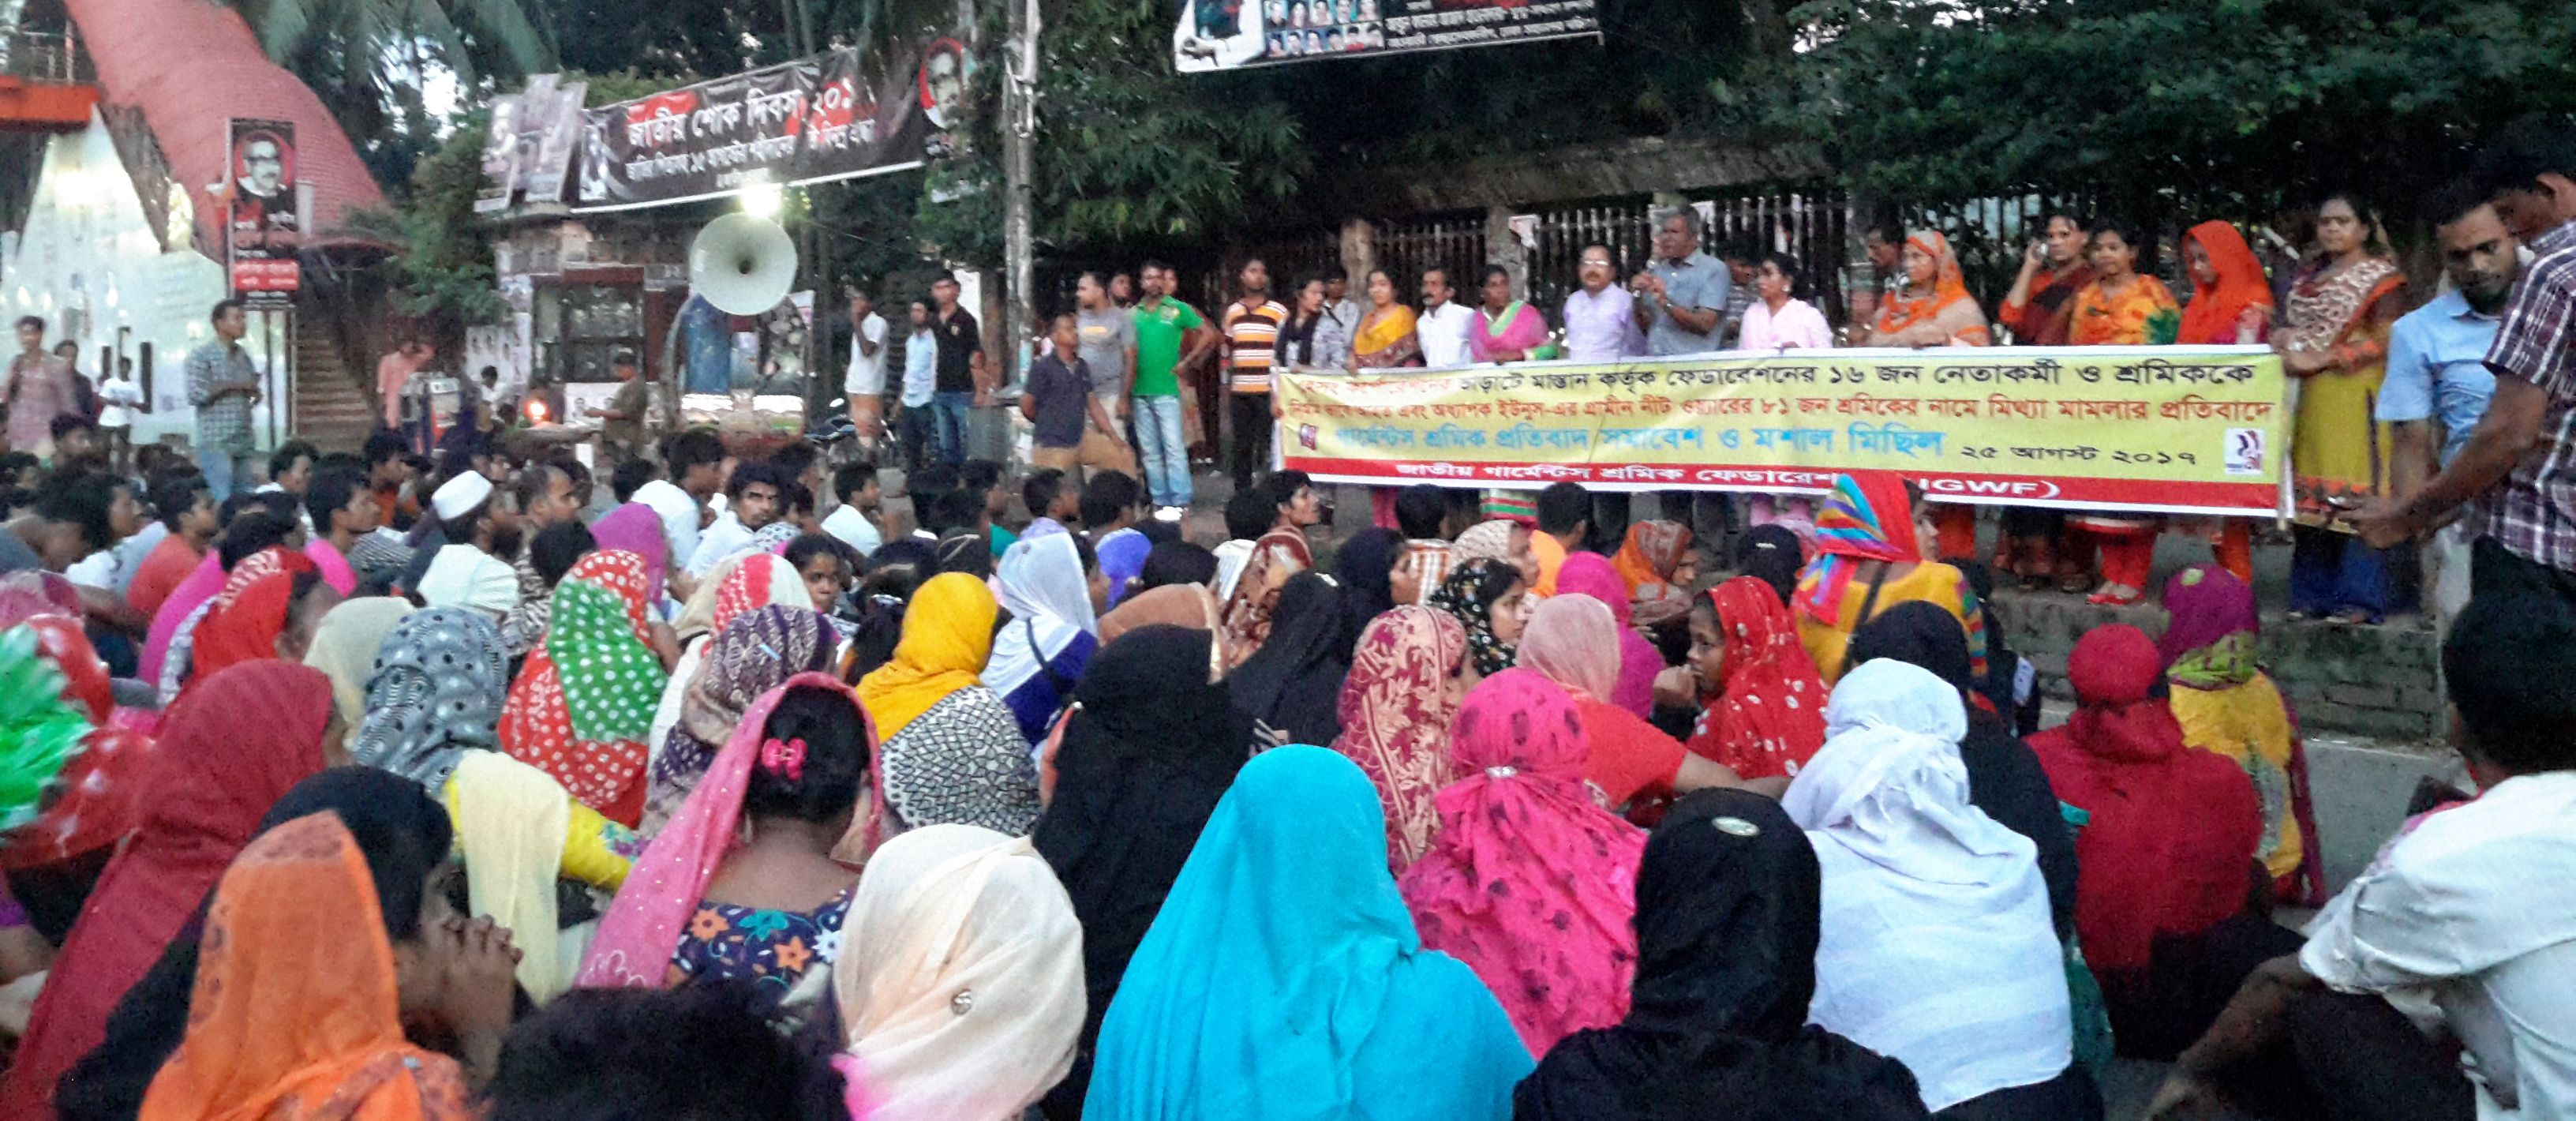 Garment Workers Protest Assembly & Torch Procession